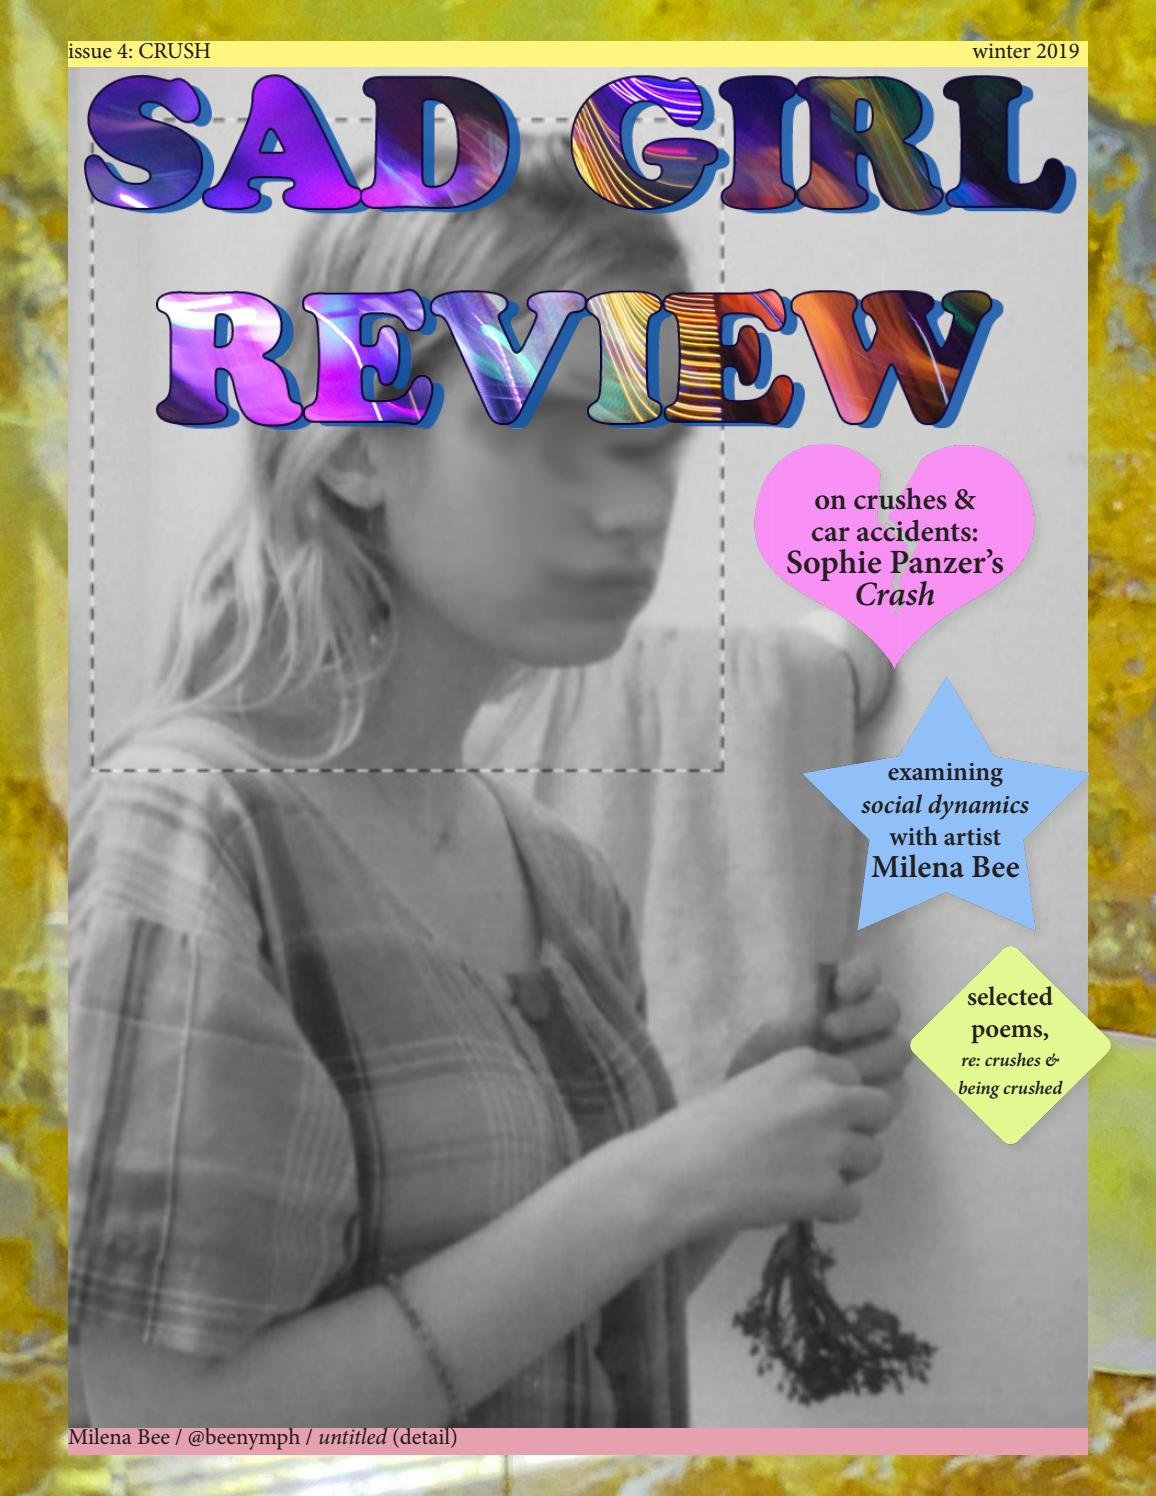 Sad Girl Review - Issue 4 - Crush By Sad Girl Review